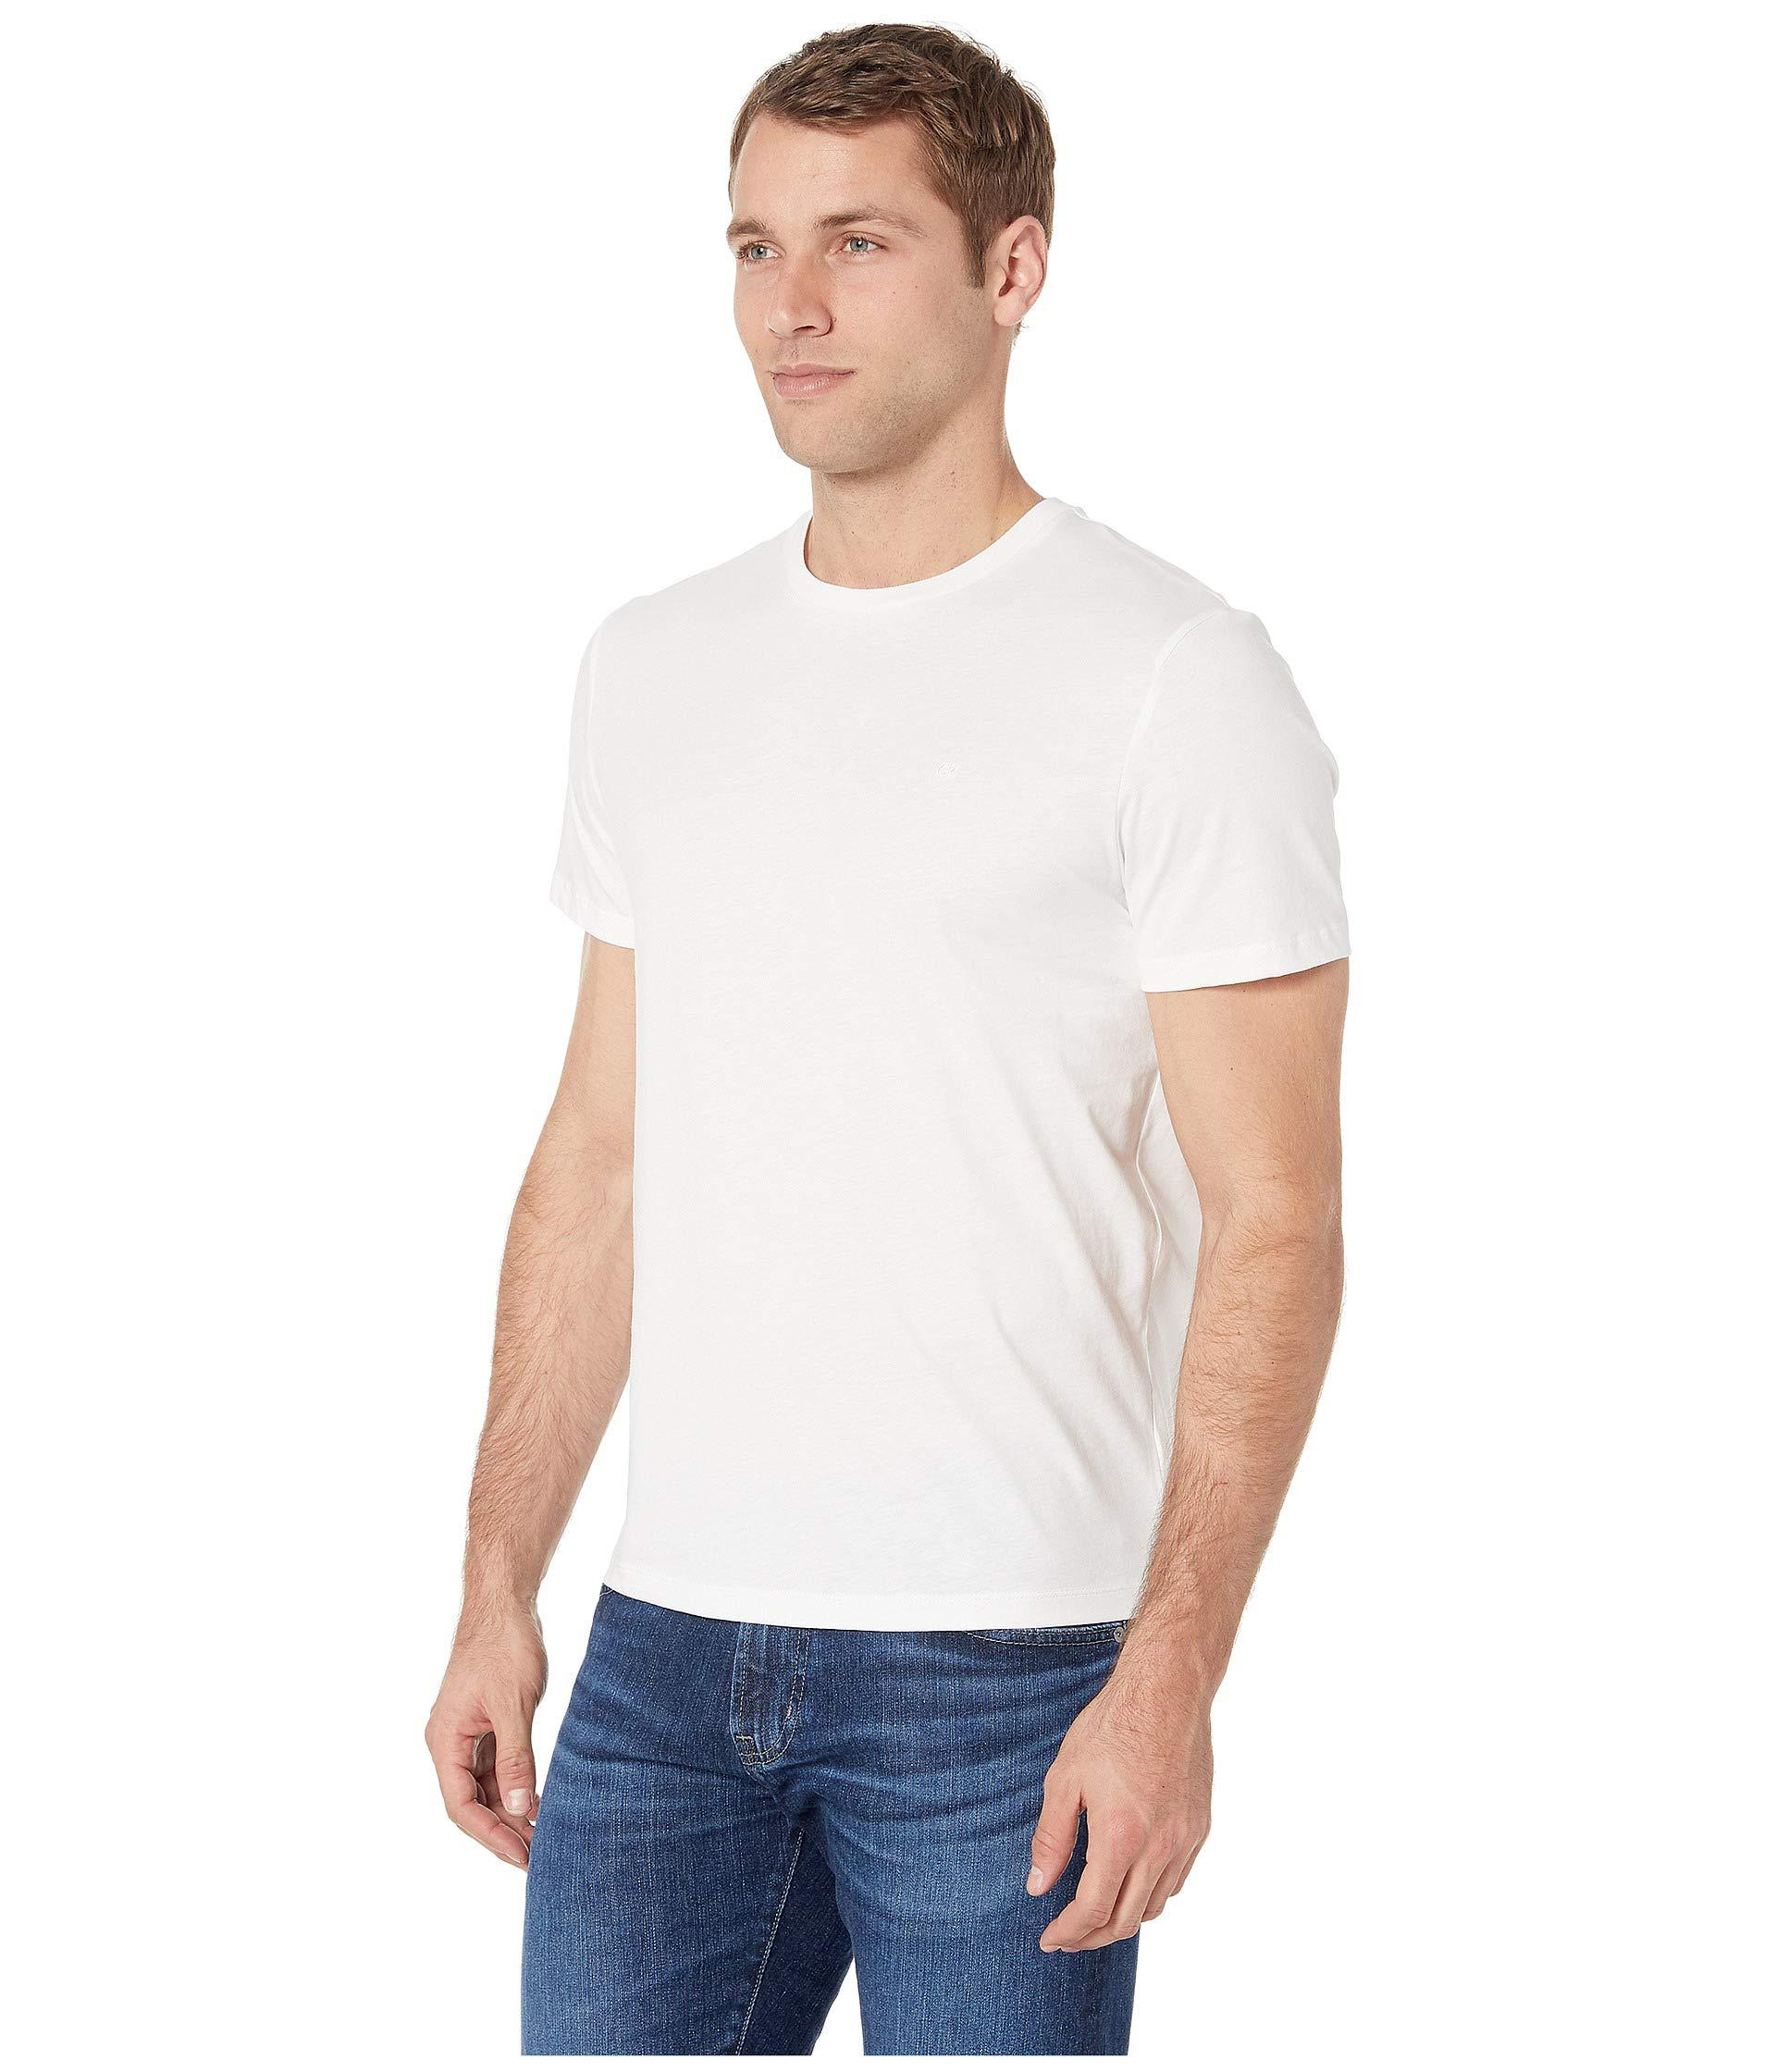 4b8c7c34e527 Lyst - Calvin Klein The Jersey Tee (black) Men's Clothing in White for Men  - Save 30%